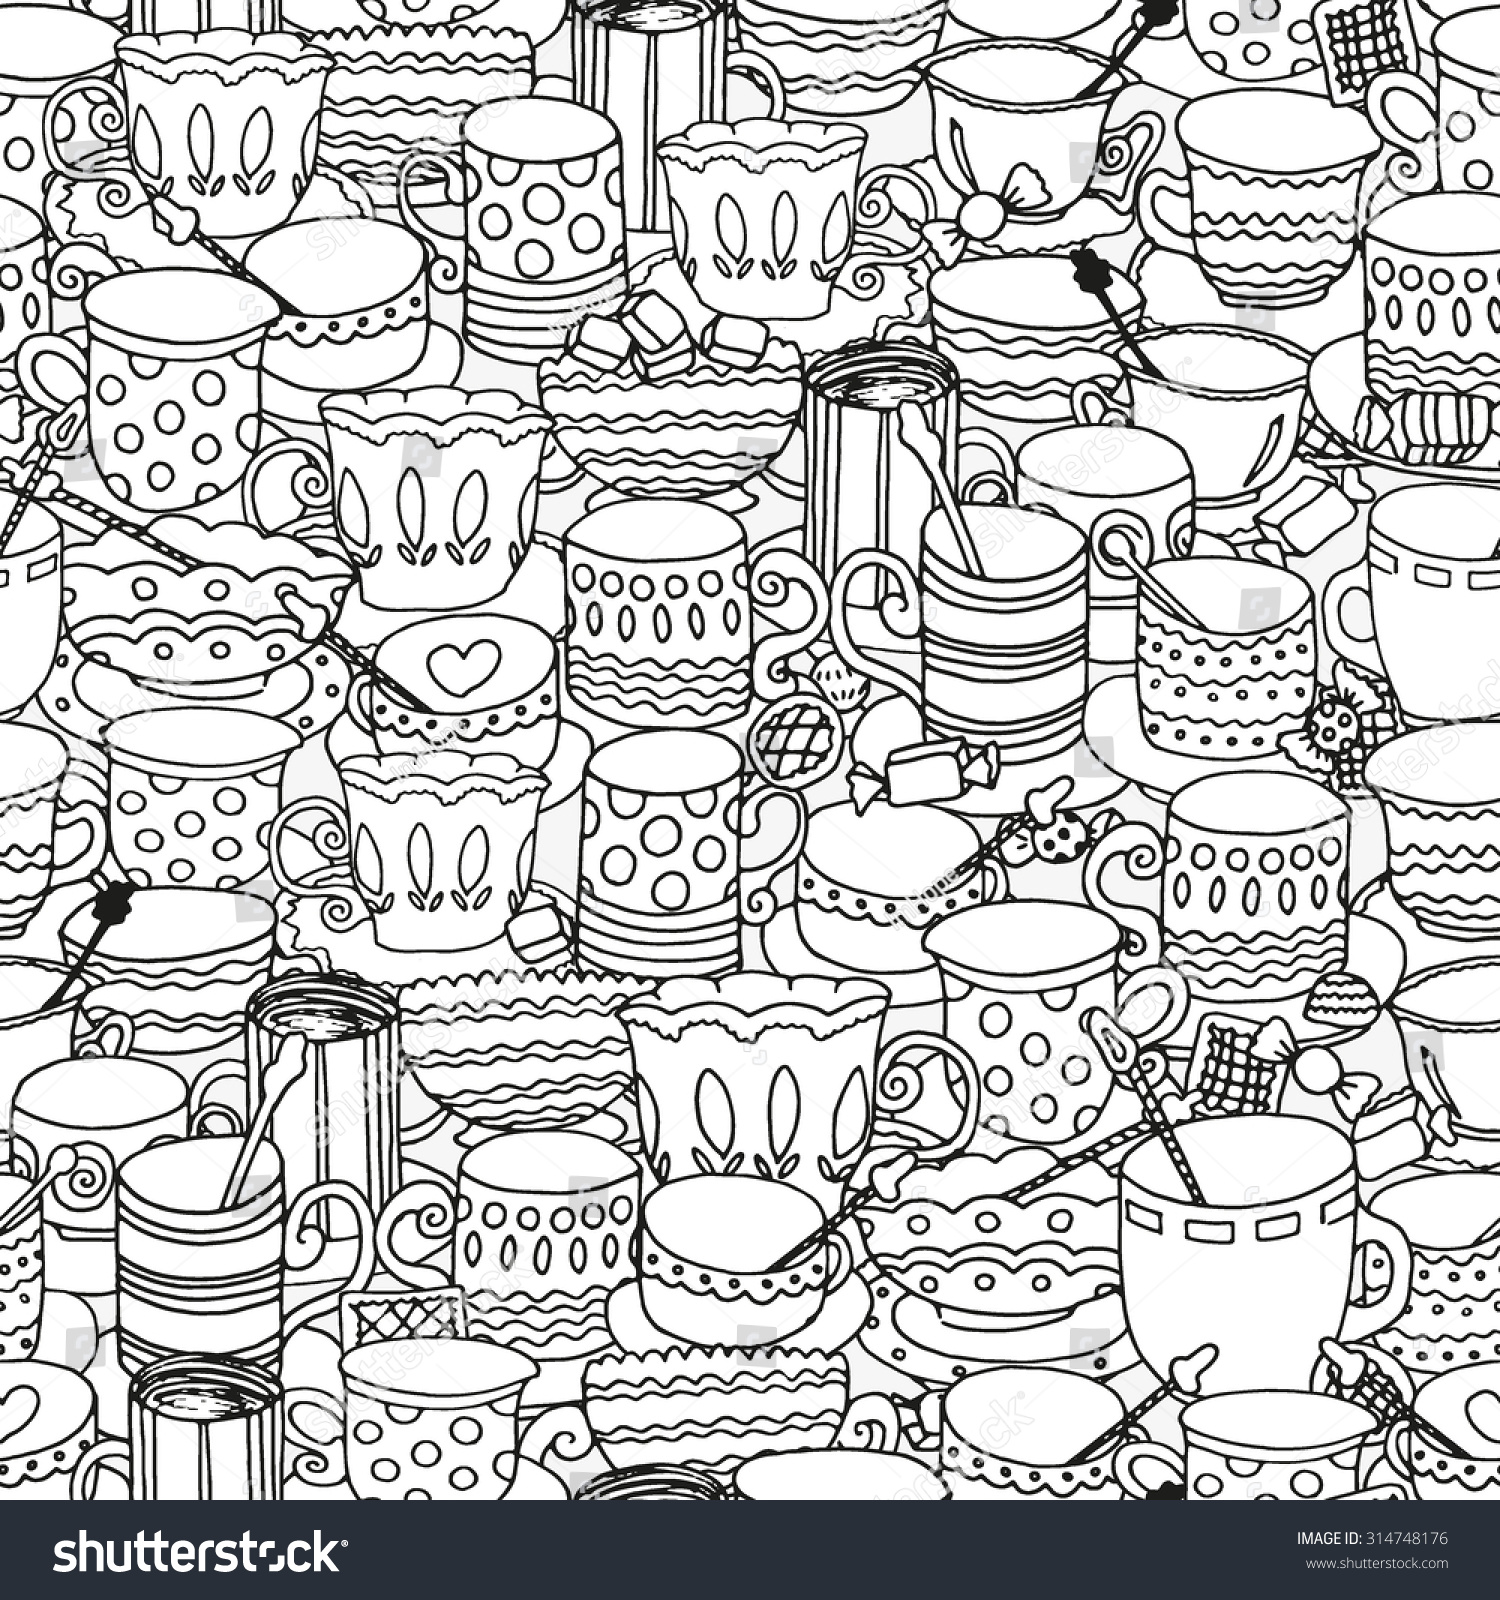 seamless doodle coffee pattern - photo #35